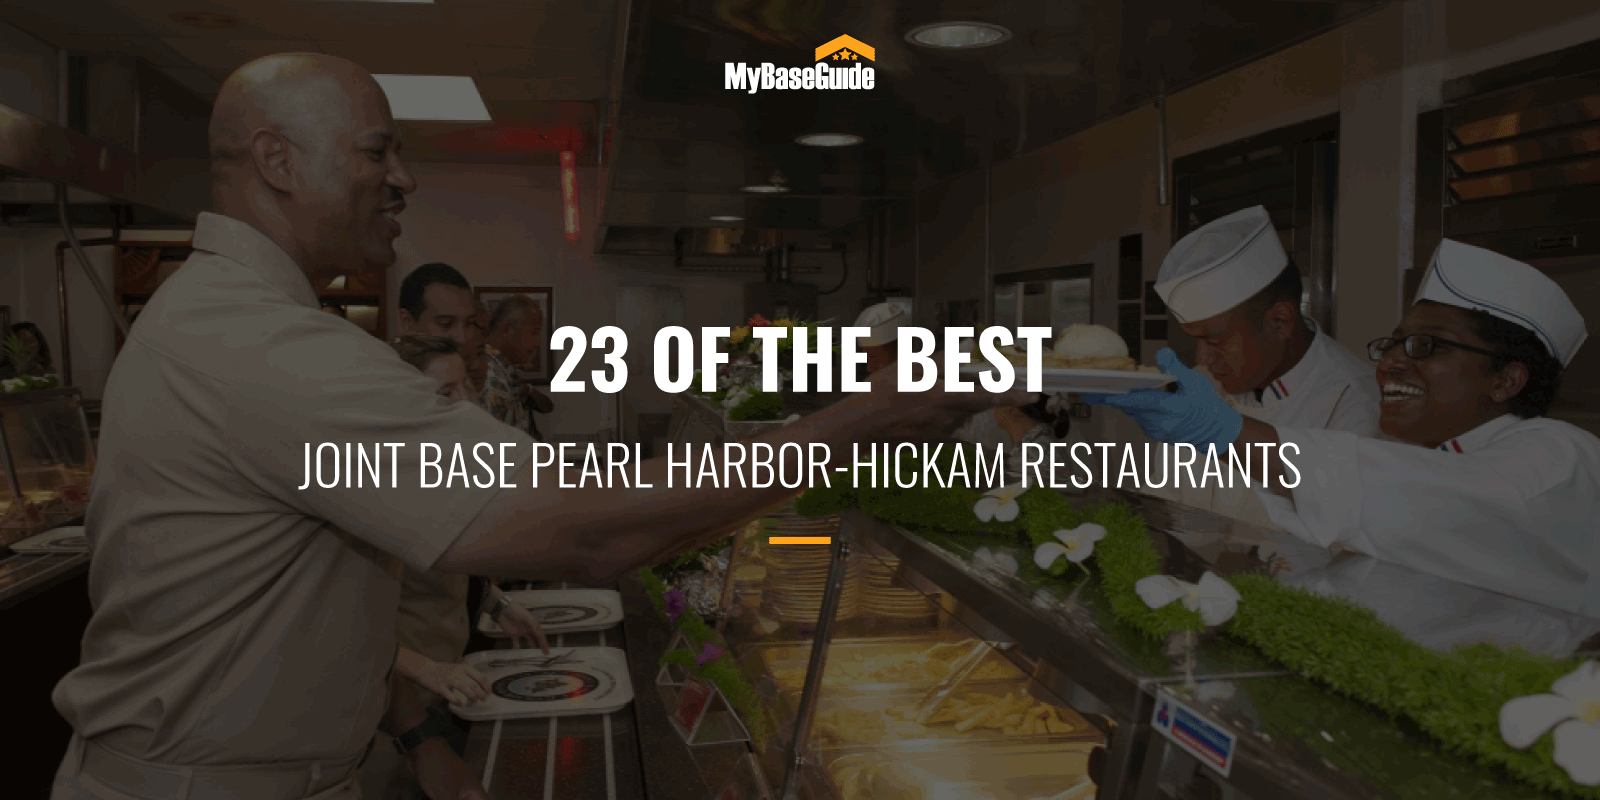 best Restaurants JB Pearl Harbor-Hickam